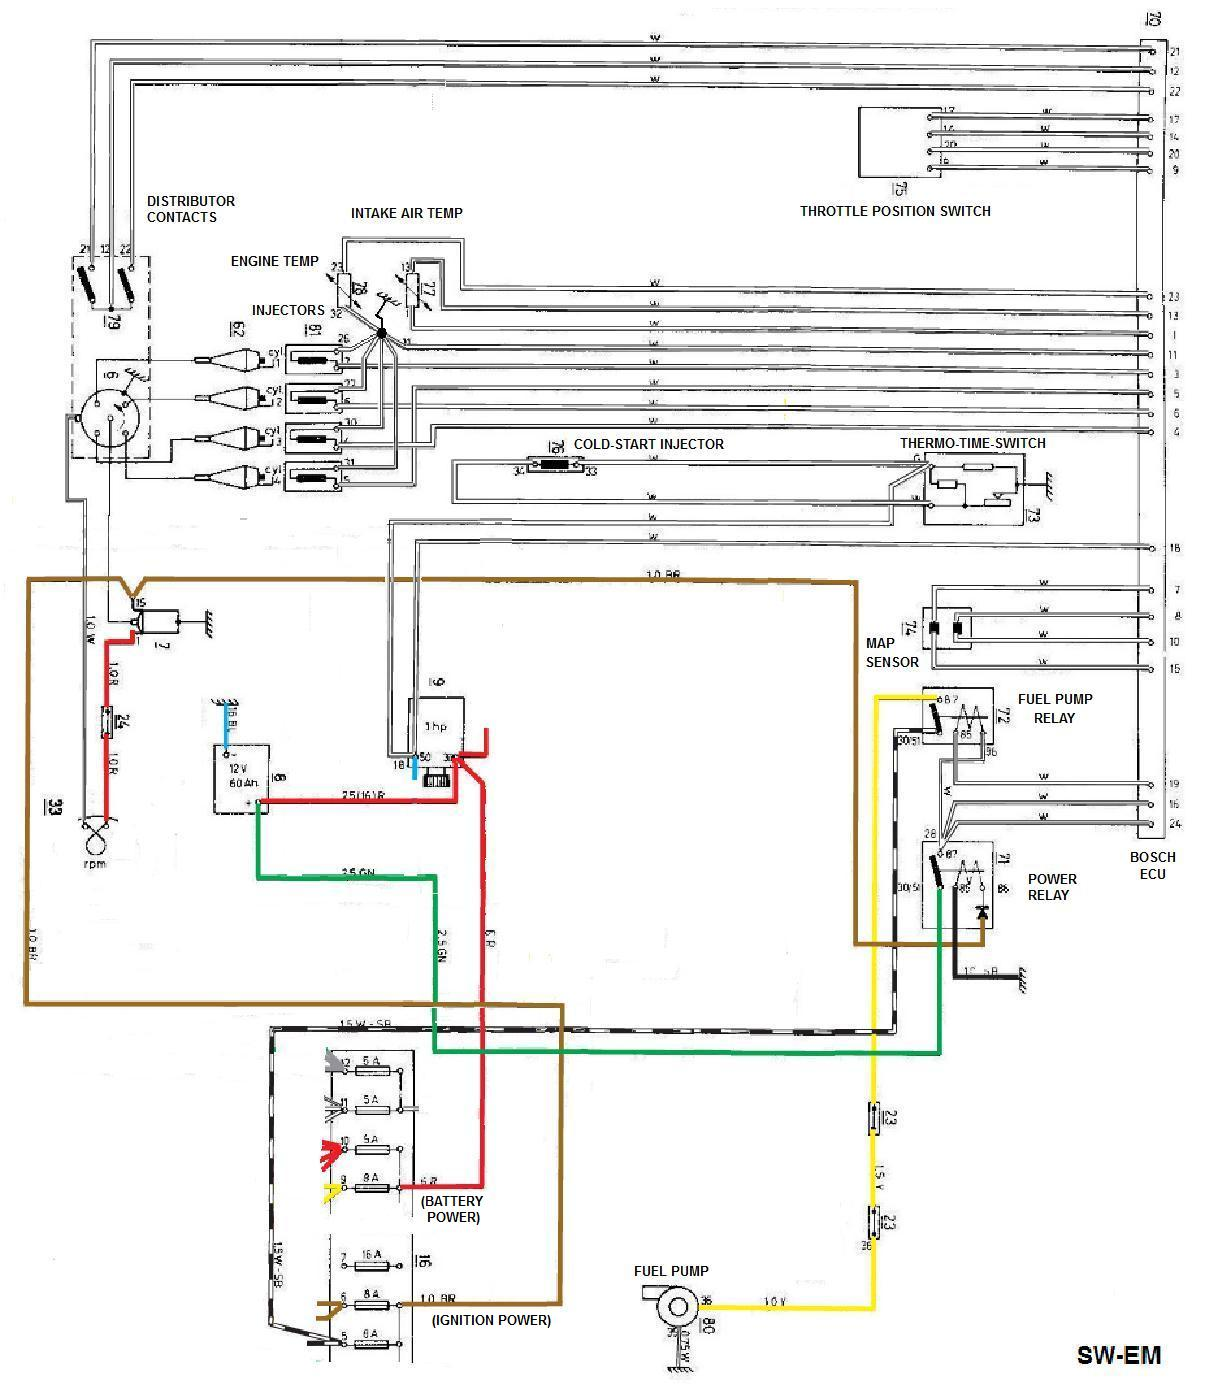 D Jetronic_wiring_excerpt bosch d jet notes  at crackthecode.co